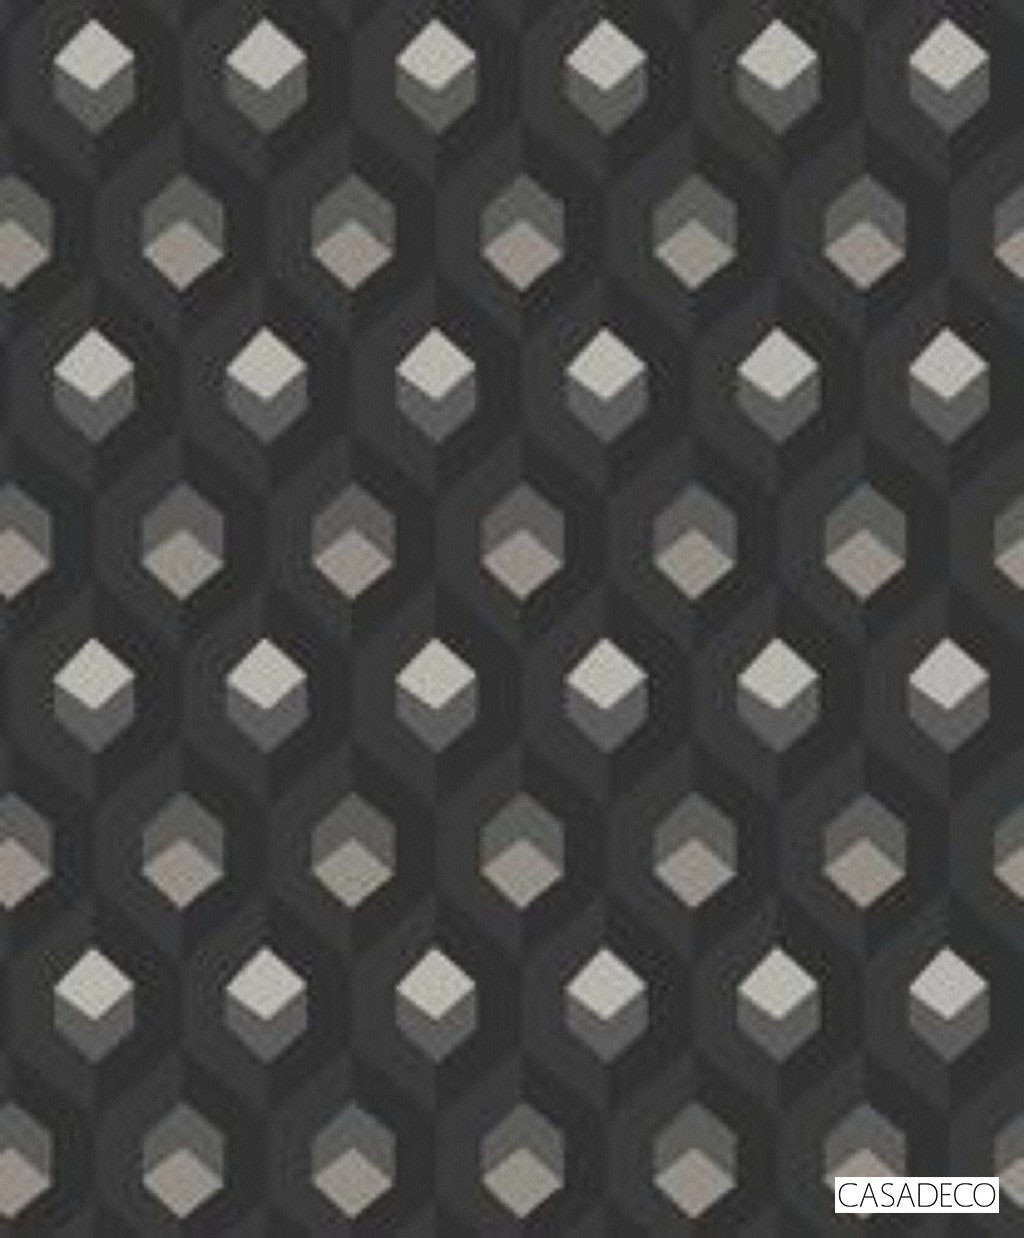 Casadeco Hexacube Wallpaper 8205 - 8205 95 11  | Wallpaper, Wallcovering - Black, Charcoal, Geometric, Decorative, Honeycomb, Pattern, Standard Width